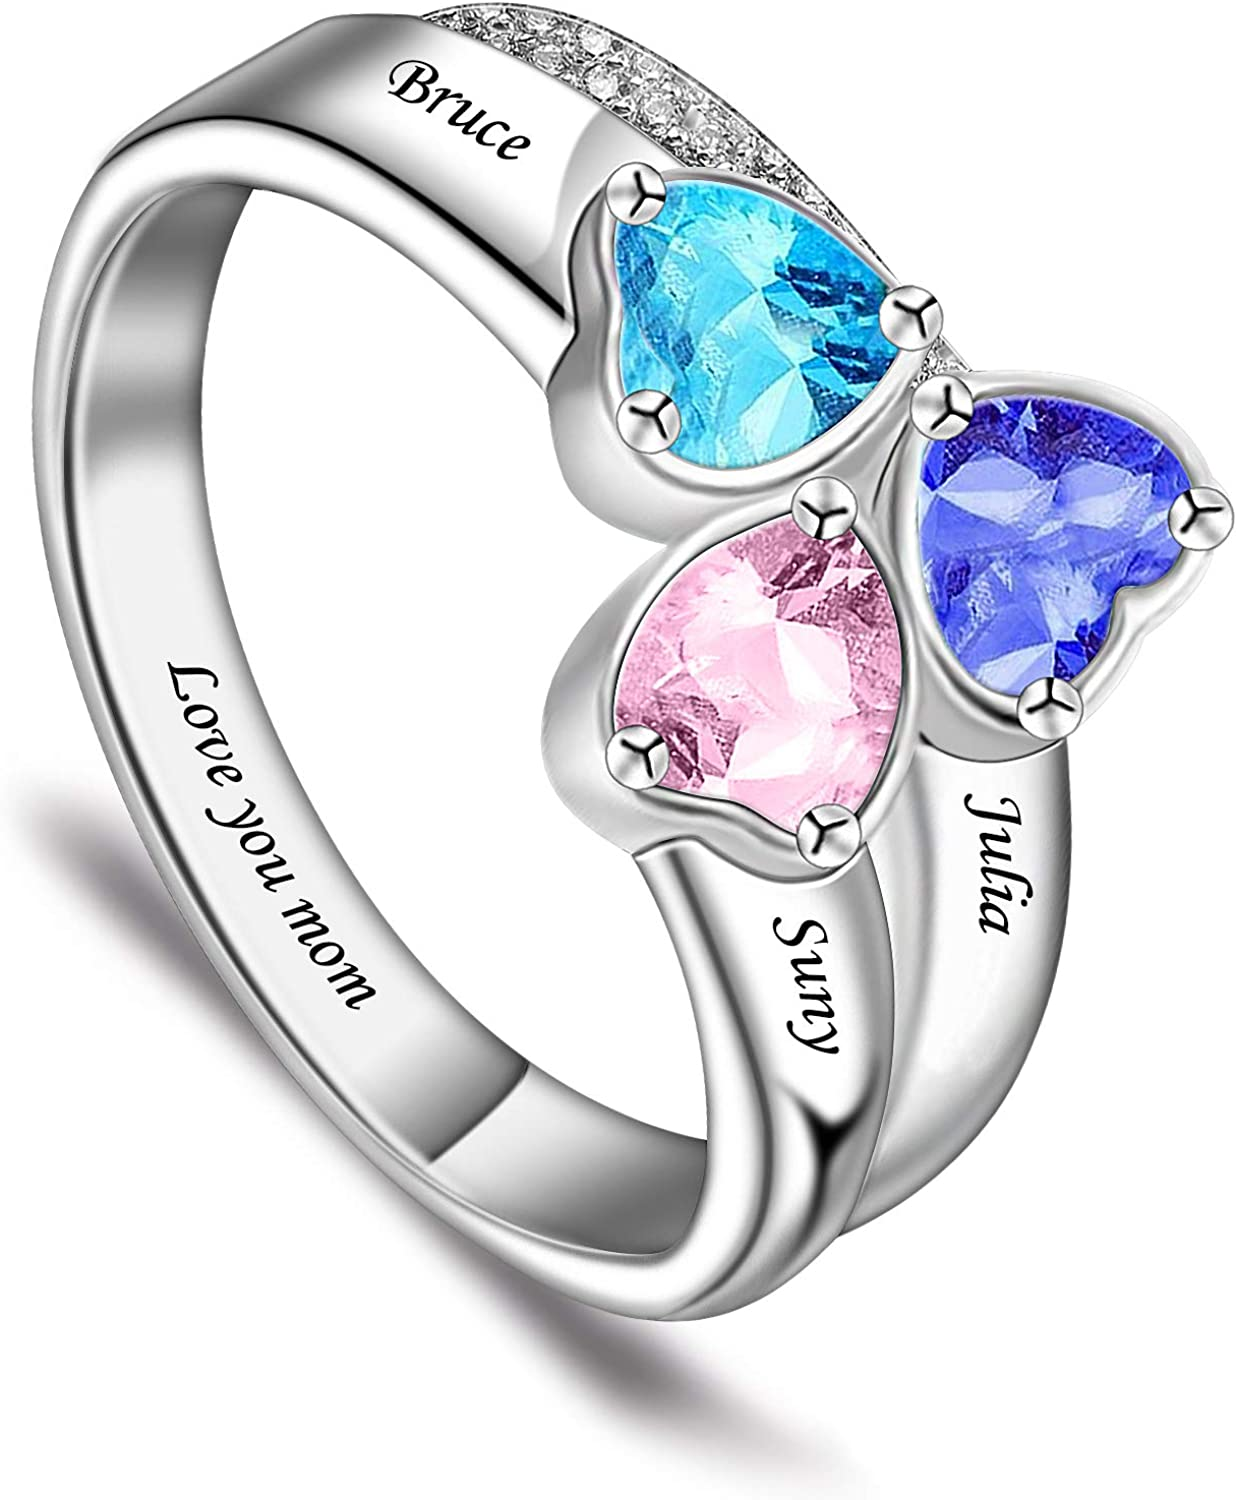 BAUMA Mothers Ring with 3 Birthstones Personalized 925 Sterling Silver Custom Engraved Name Anniversary Ring for Women